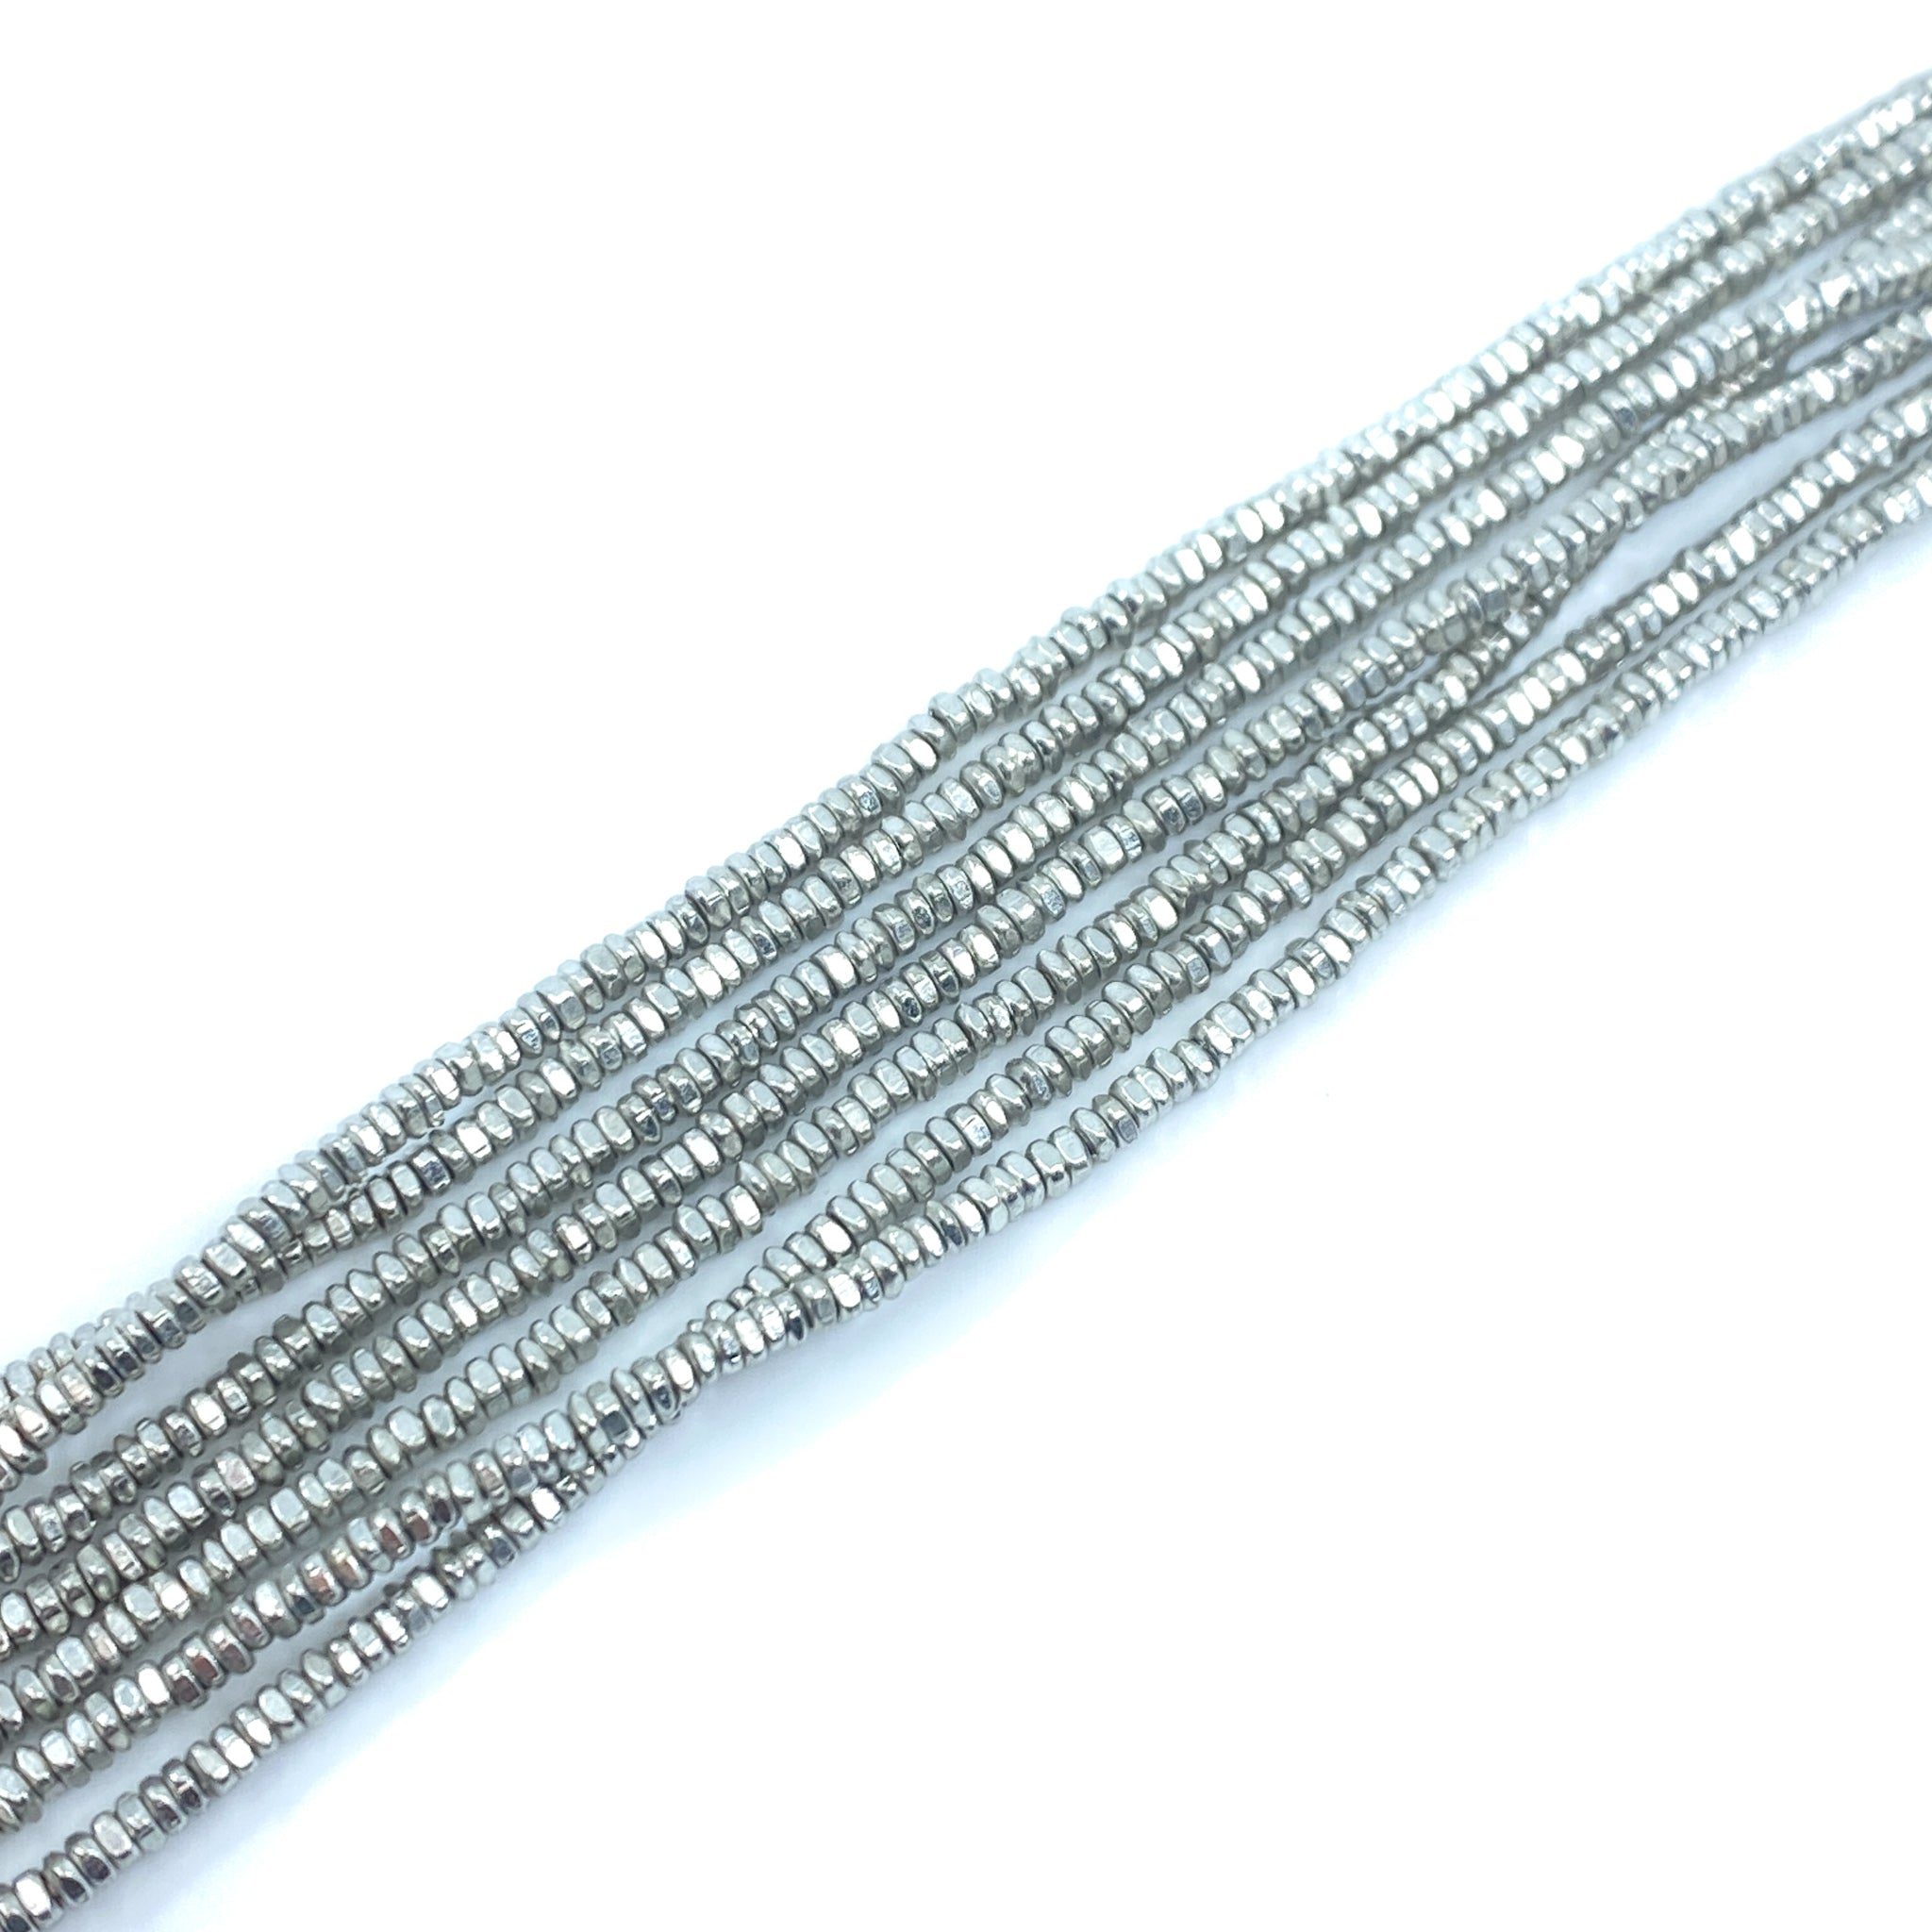 3mm Rustic Square Spacer Strand - Silver Plated Brass